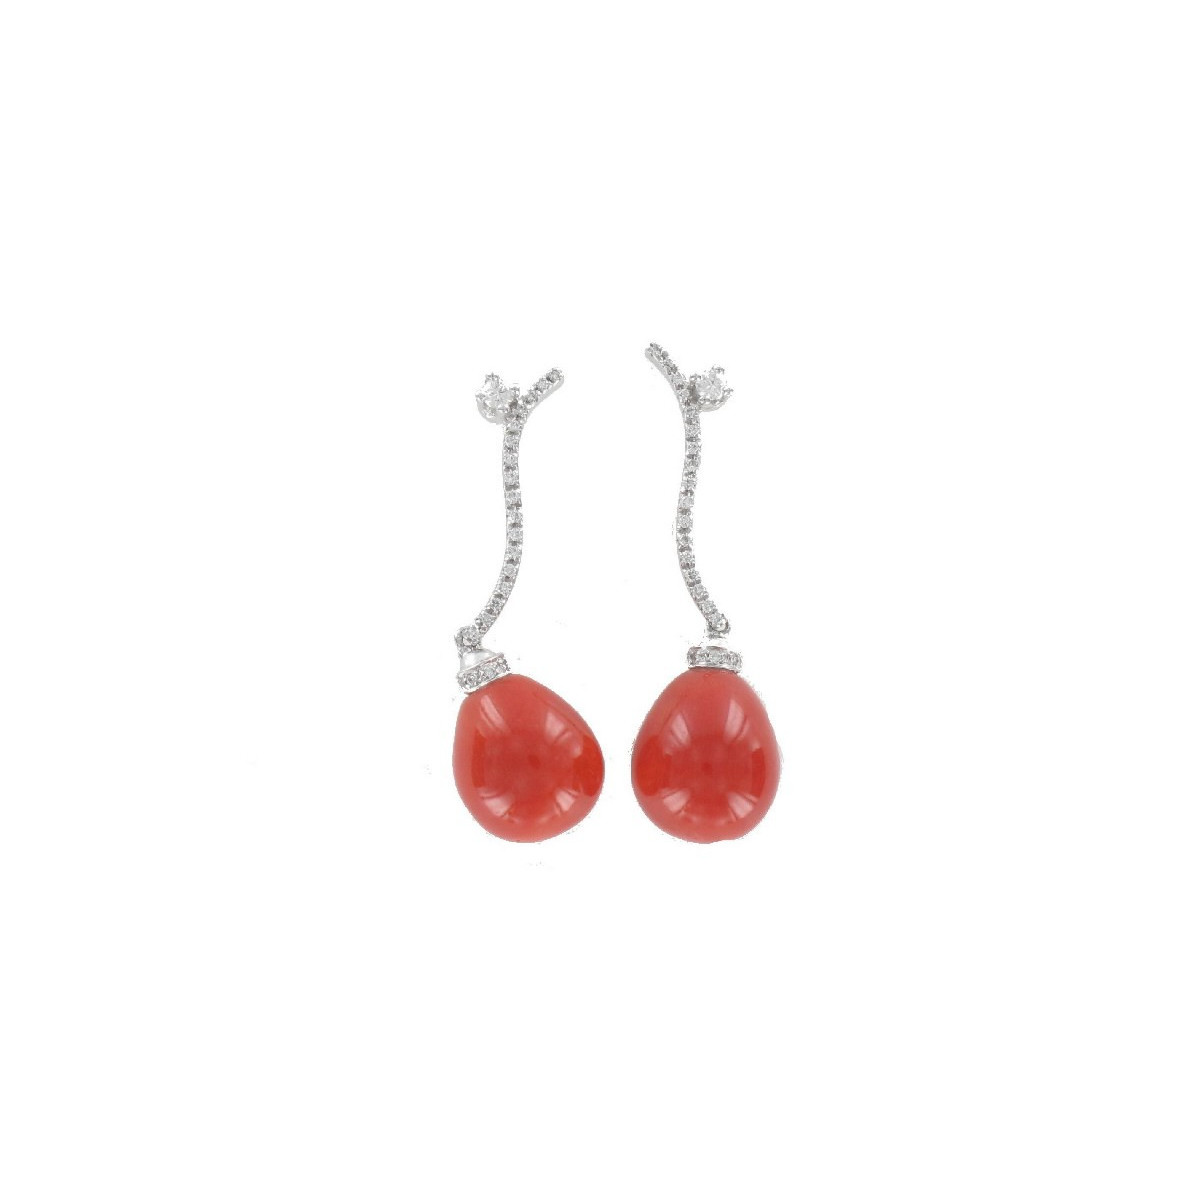 GOLD EARRING DIAMOND AND CORAL